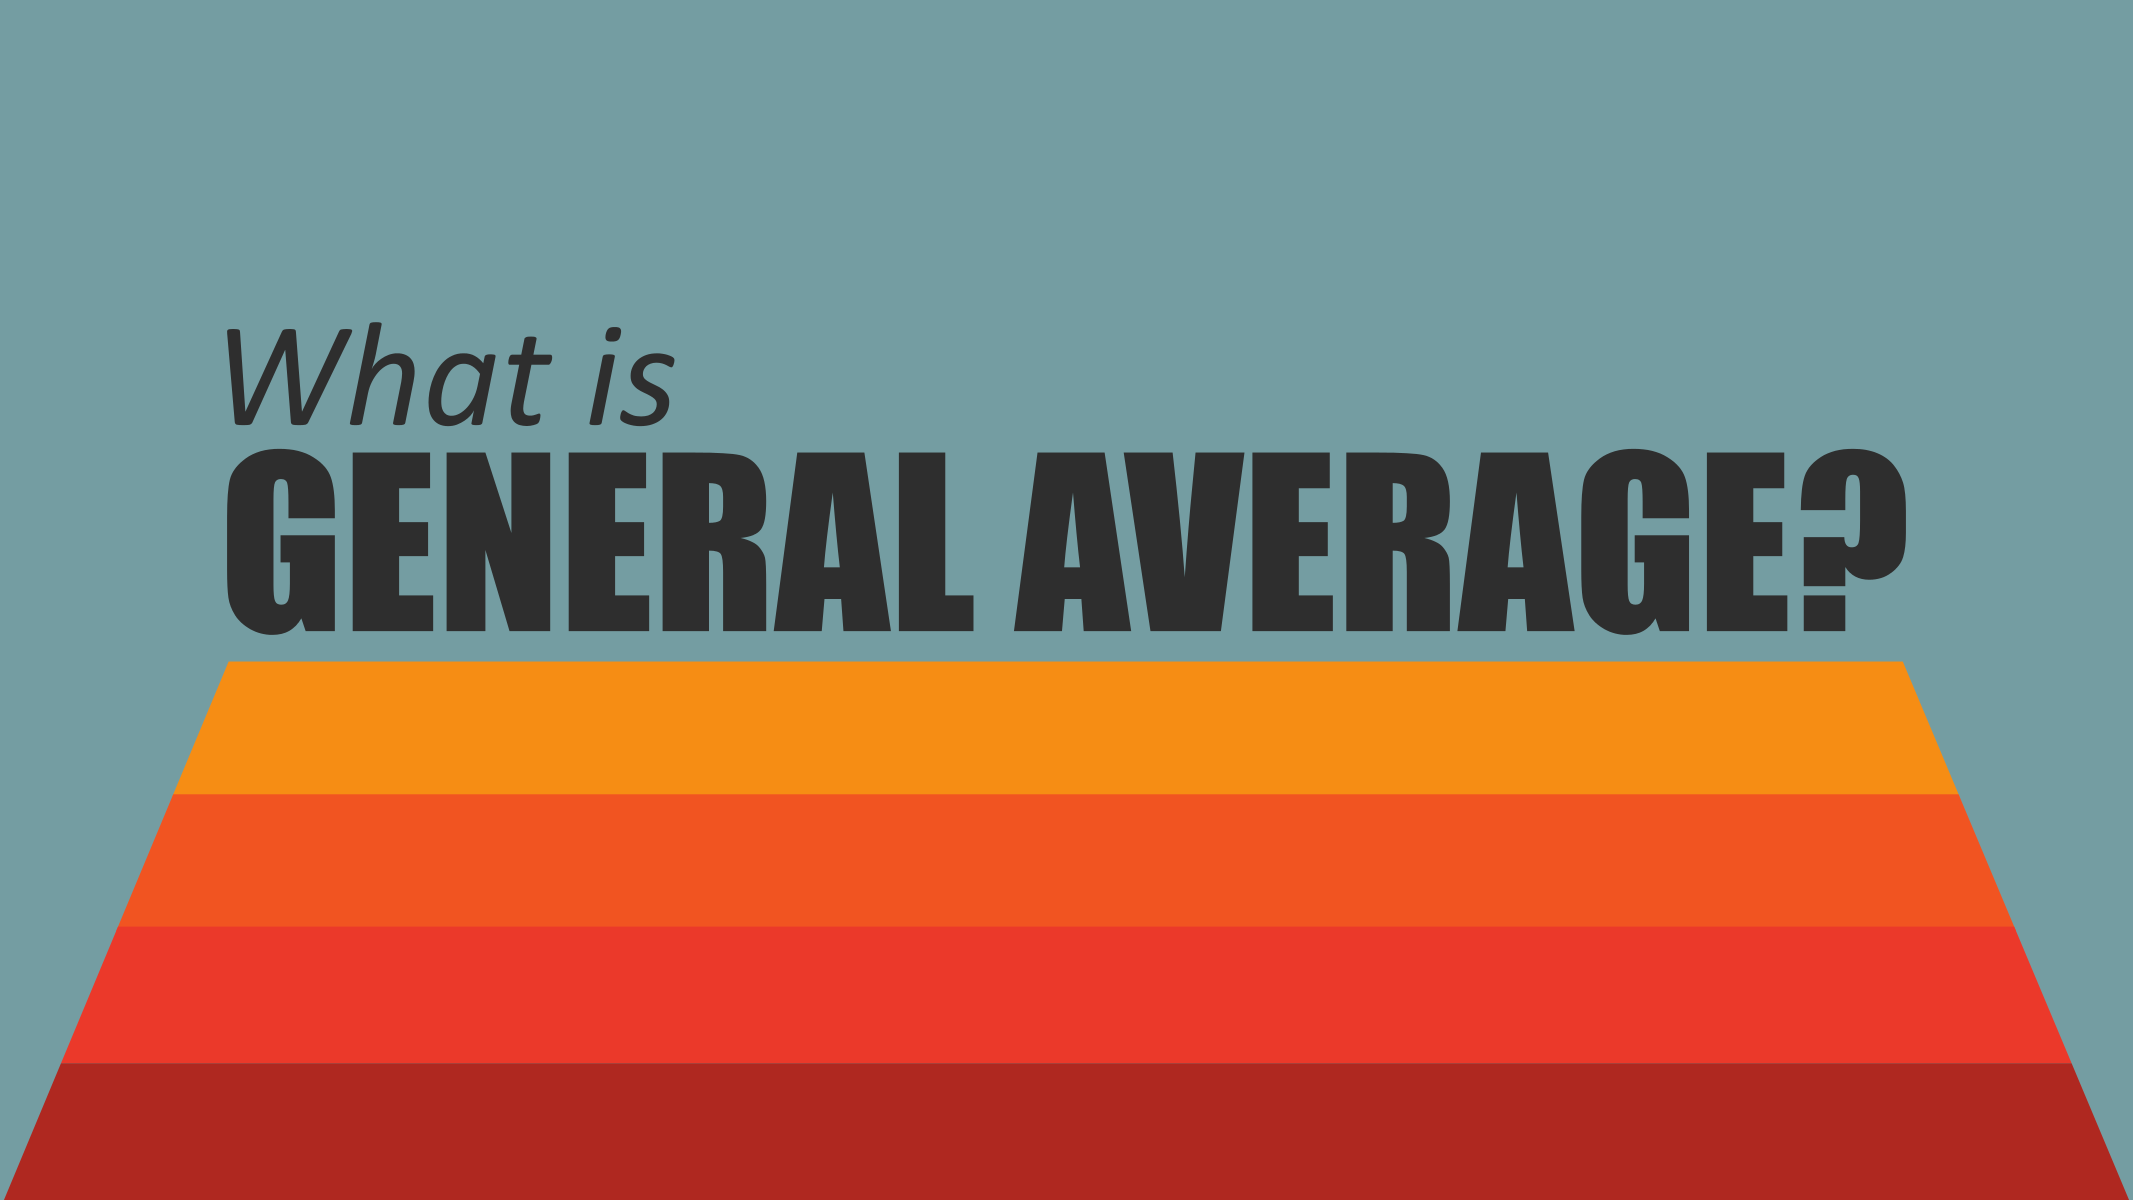 [Video] What is General Average?